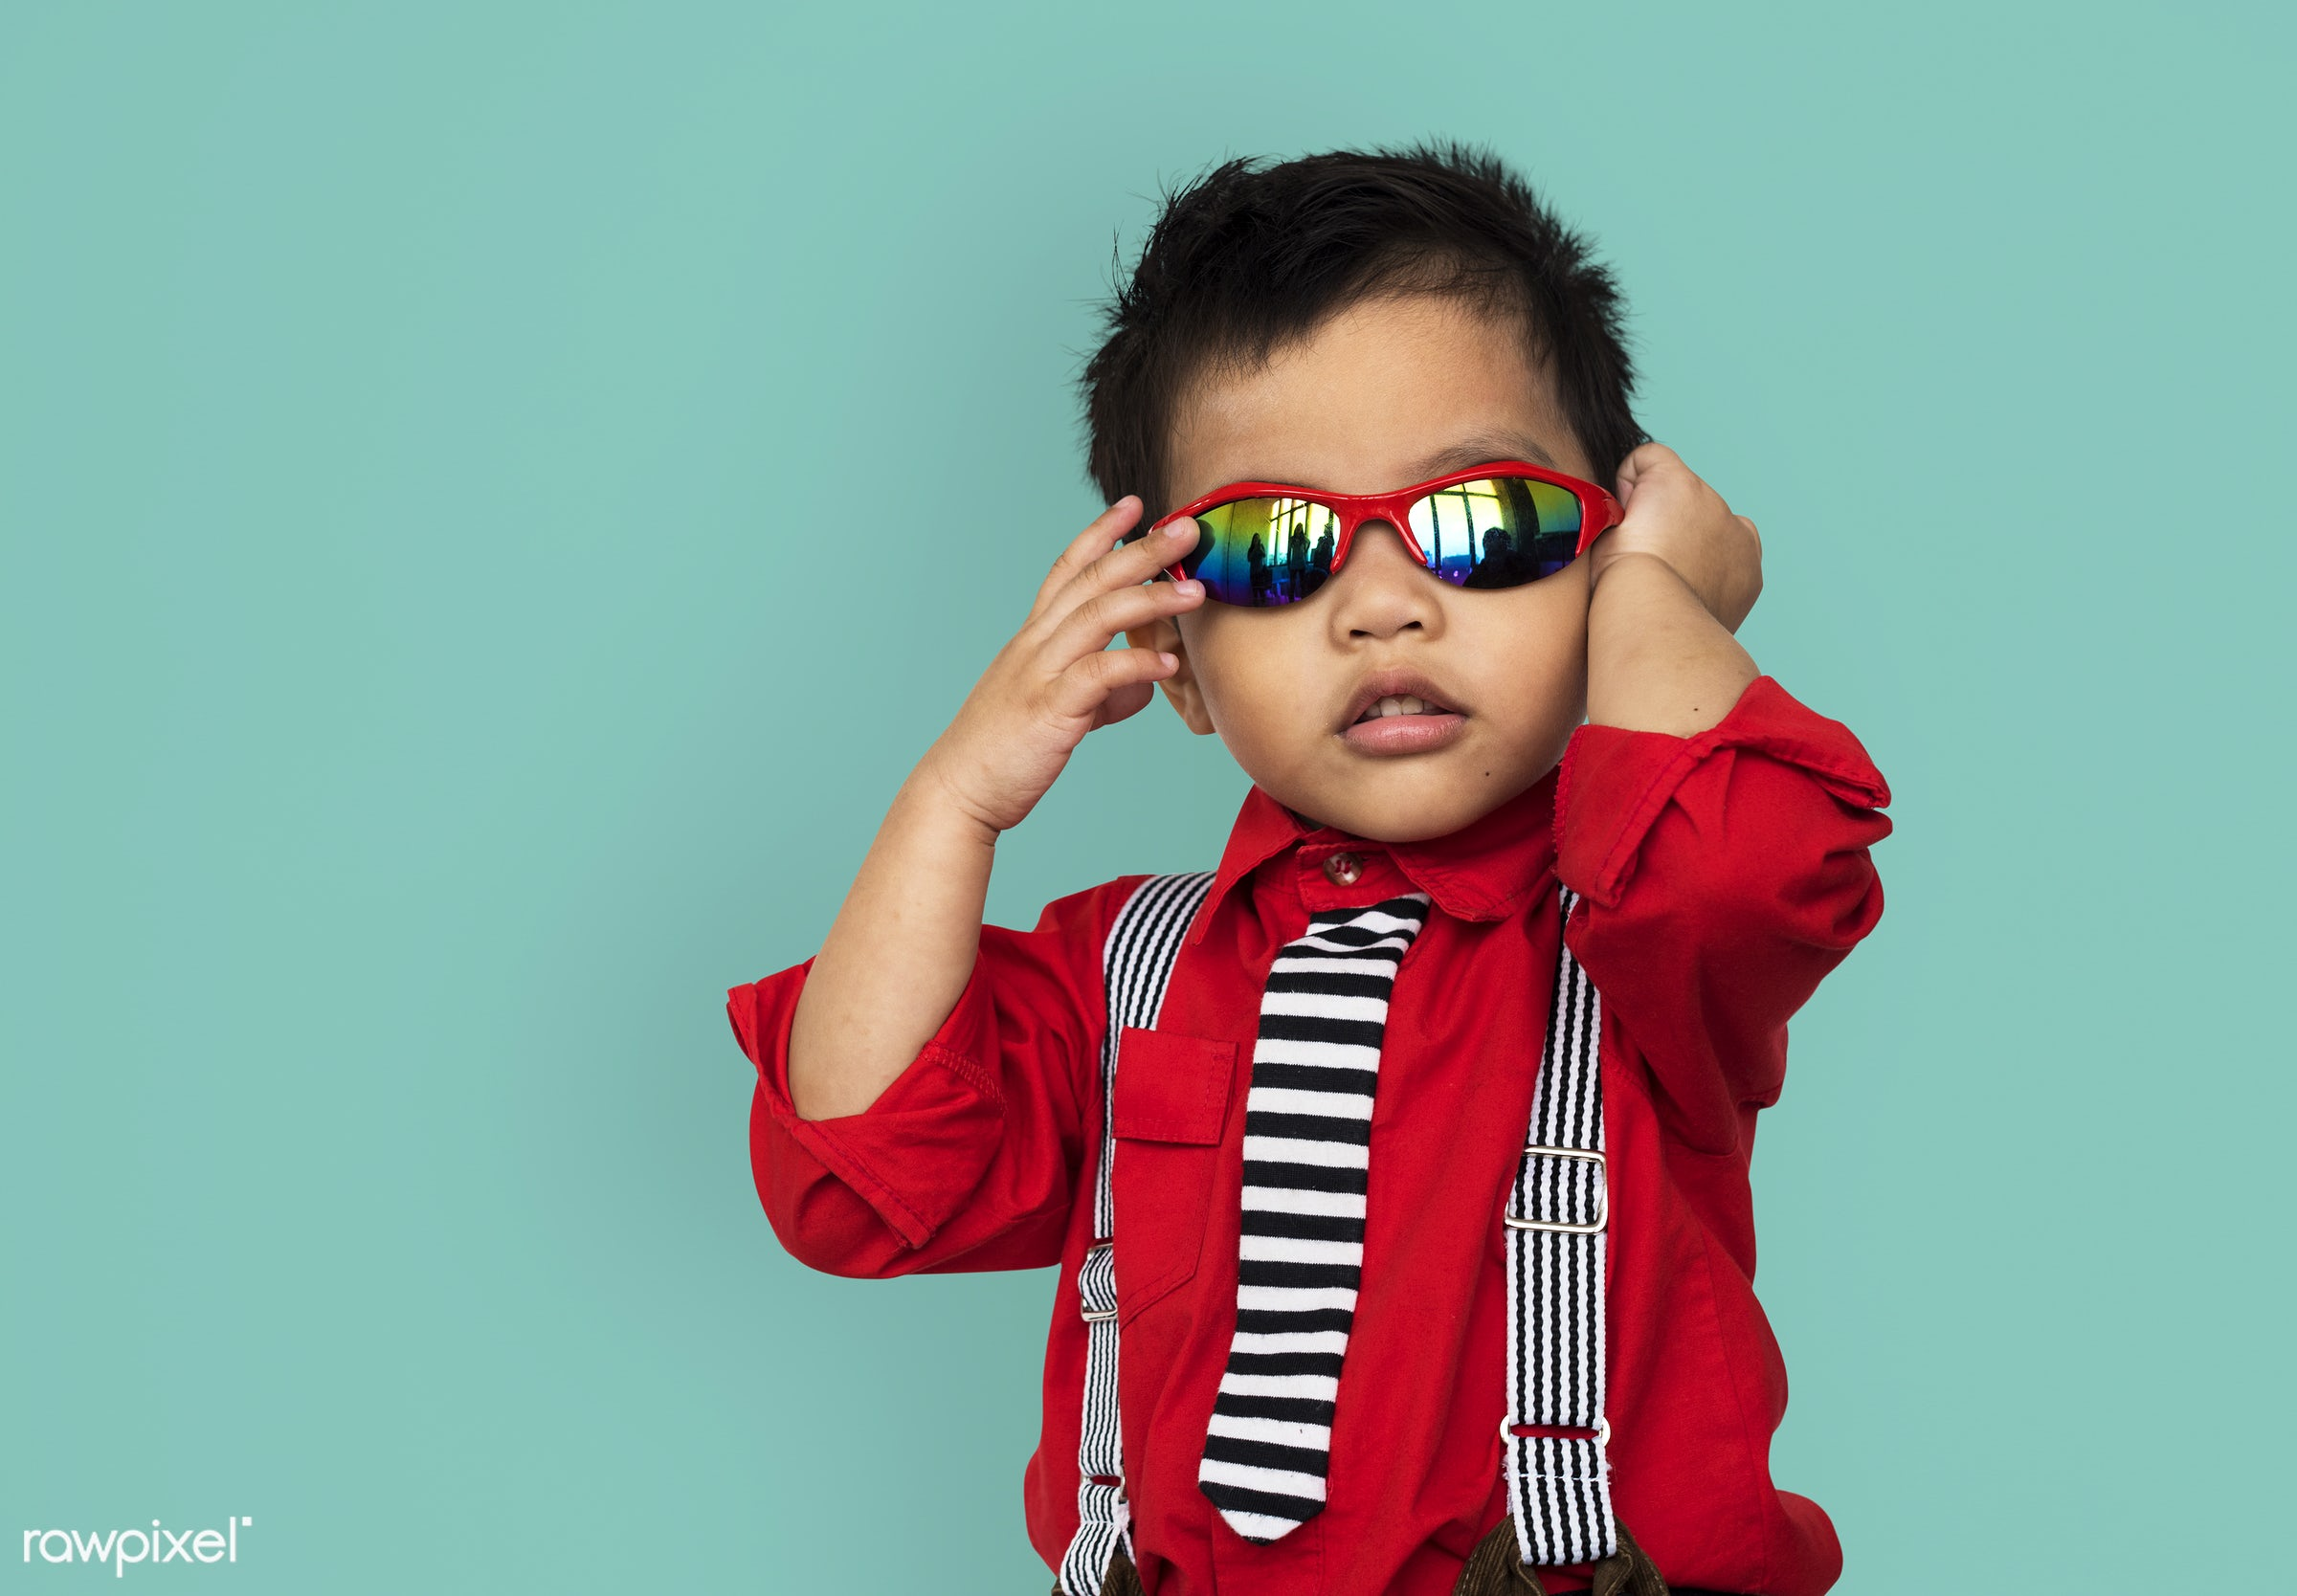 studio, expression, person, people, asian, kid, childhood, smile, cheerful, smiling, tint, happiness, sunglasses, portrait,...